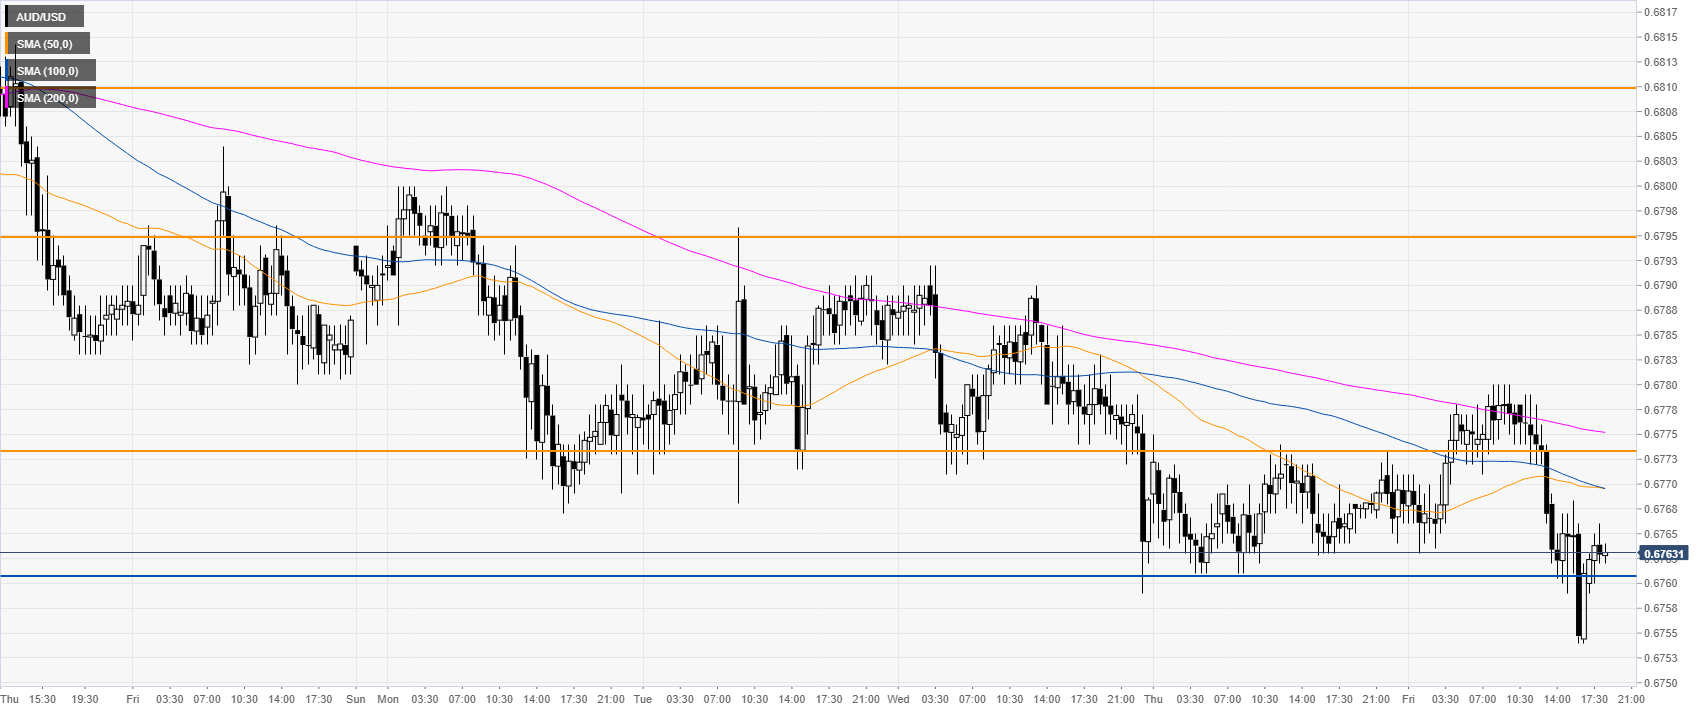 AUD/USD Technical Analysis: Aussie on track to end Friday near weekly lows, sub-0.6800 handle ...